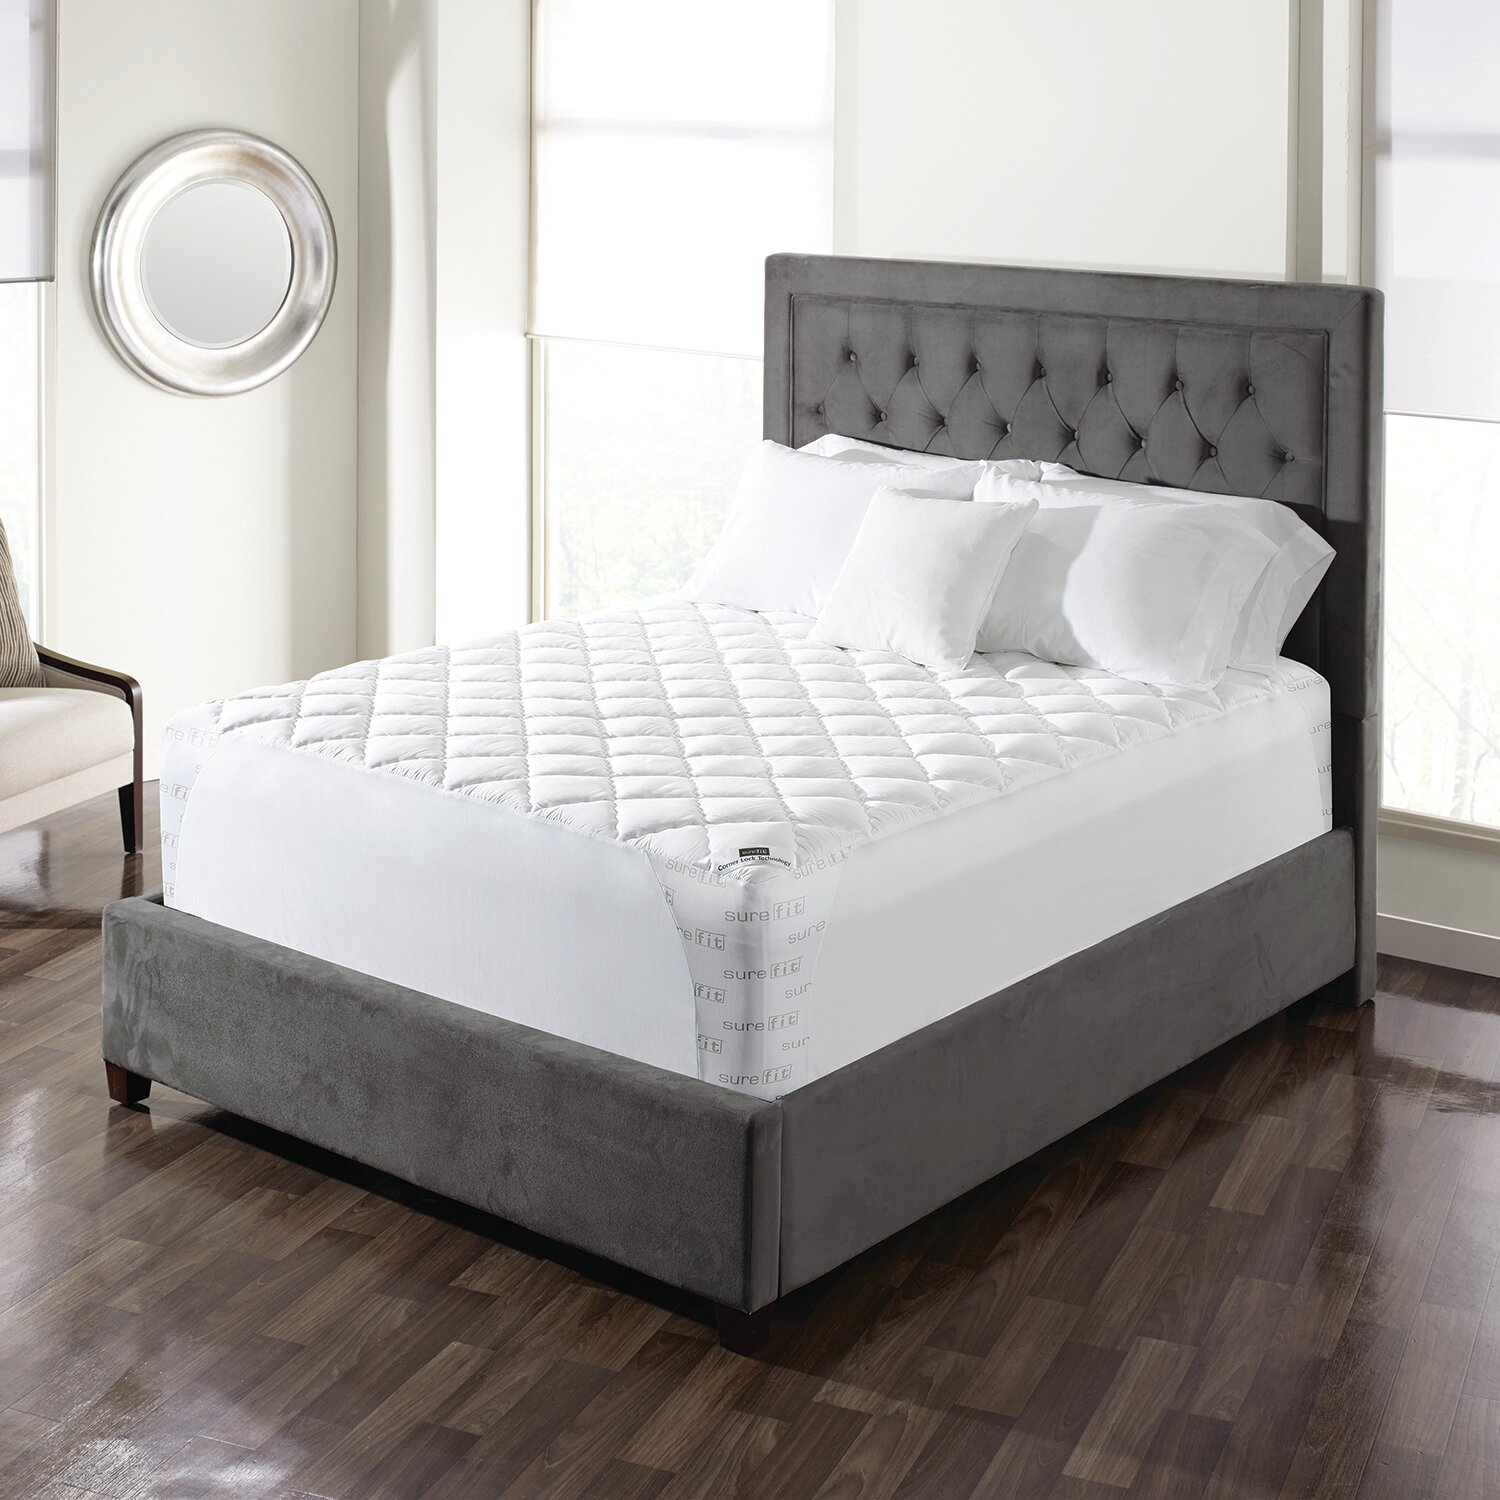 foam inch mattress memory sleep w cover gel topper with previous innovations product pad si